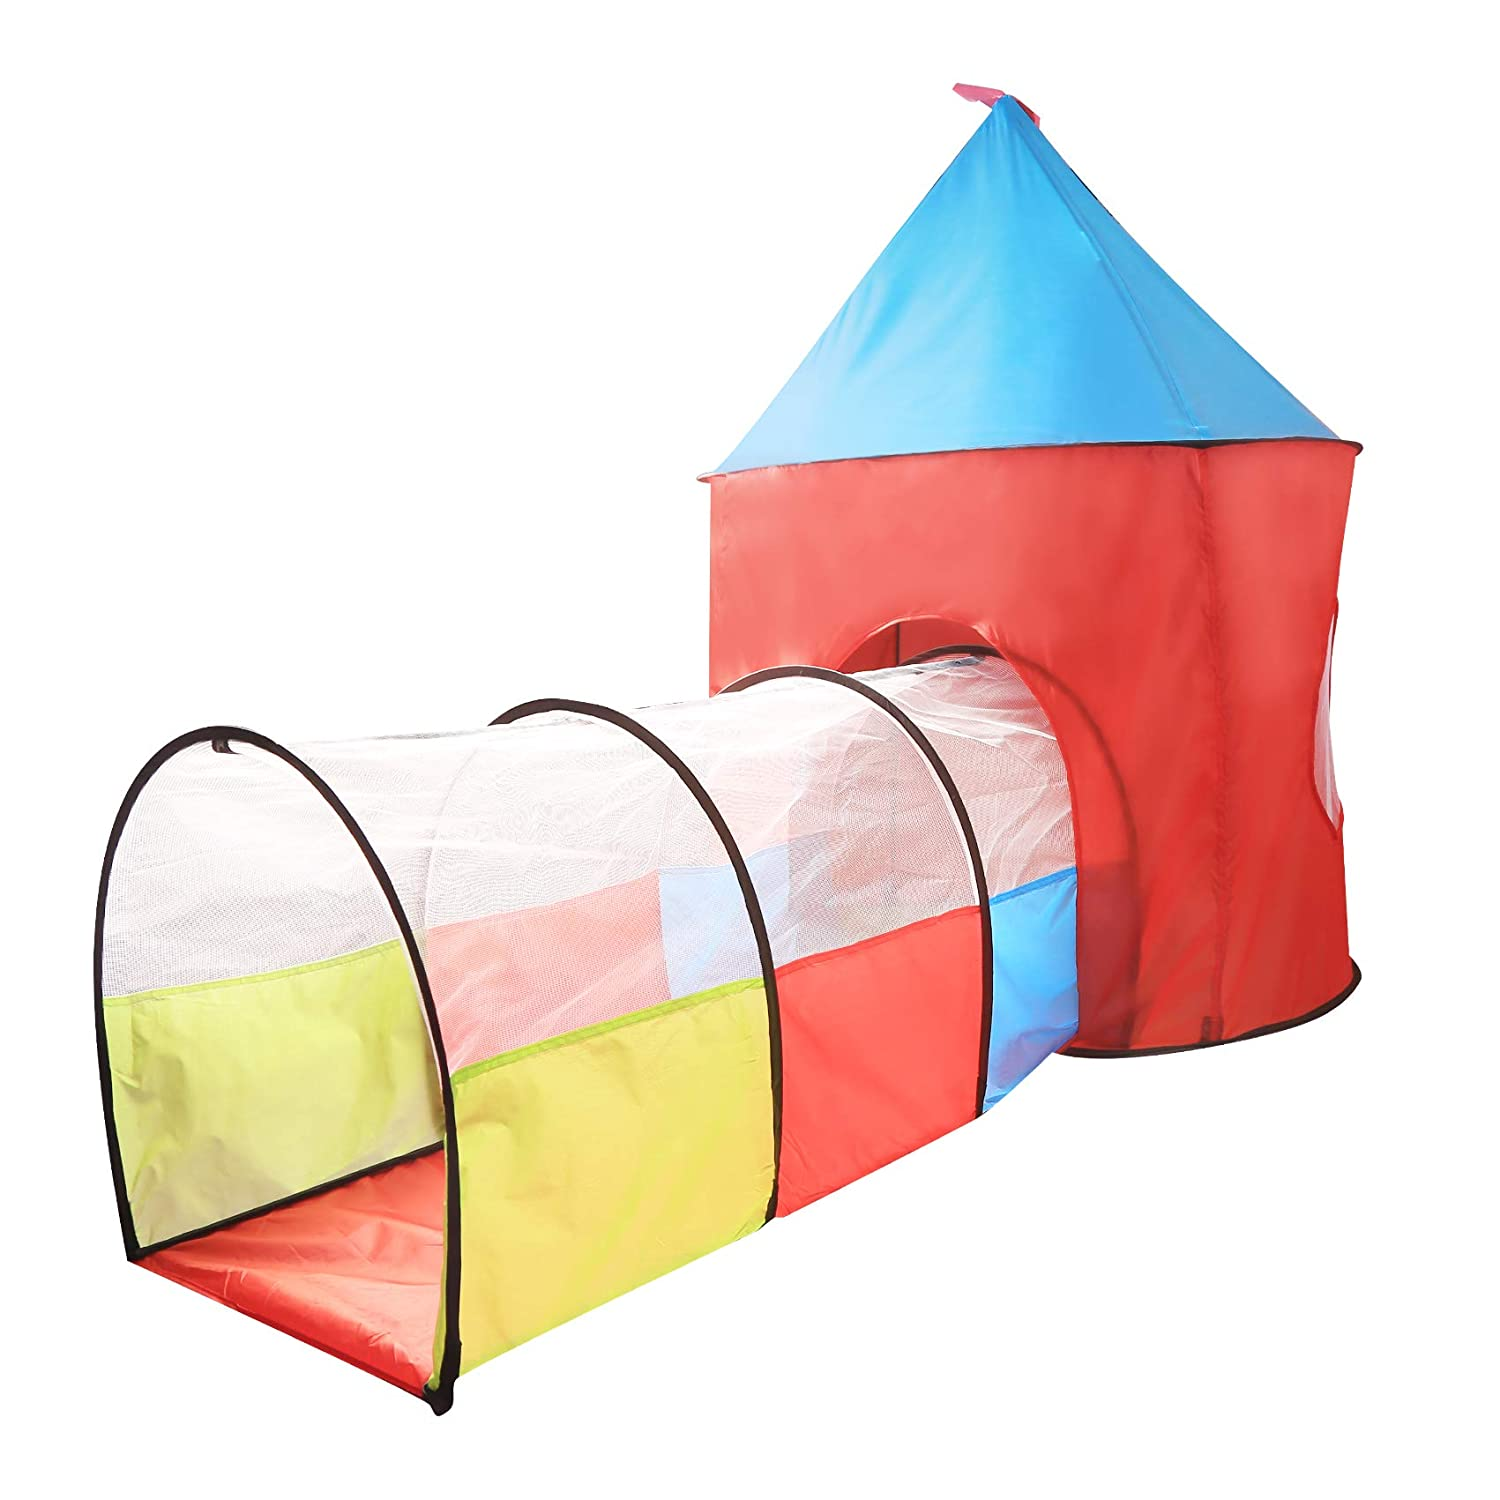 No.A999-227 Digabi 89 Large Play Tent with Tunnel Toy Playhouse Indoor /& Outdoor Garden Foldable Pop Up Pink Play Tent for Kids Party Favor